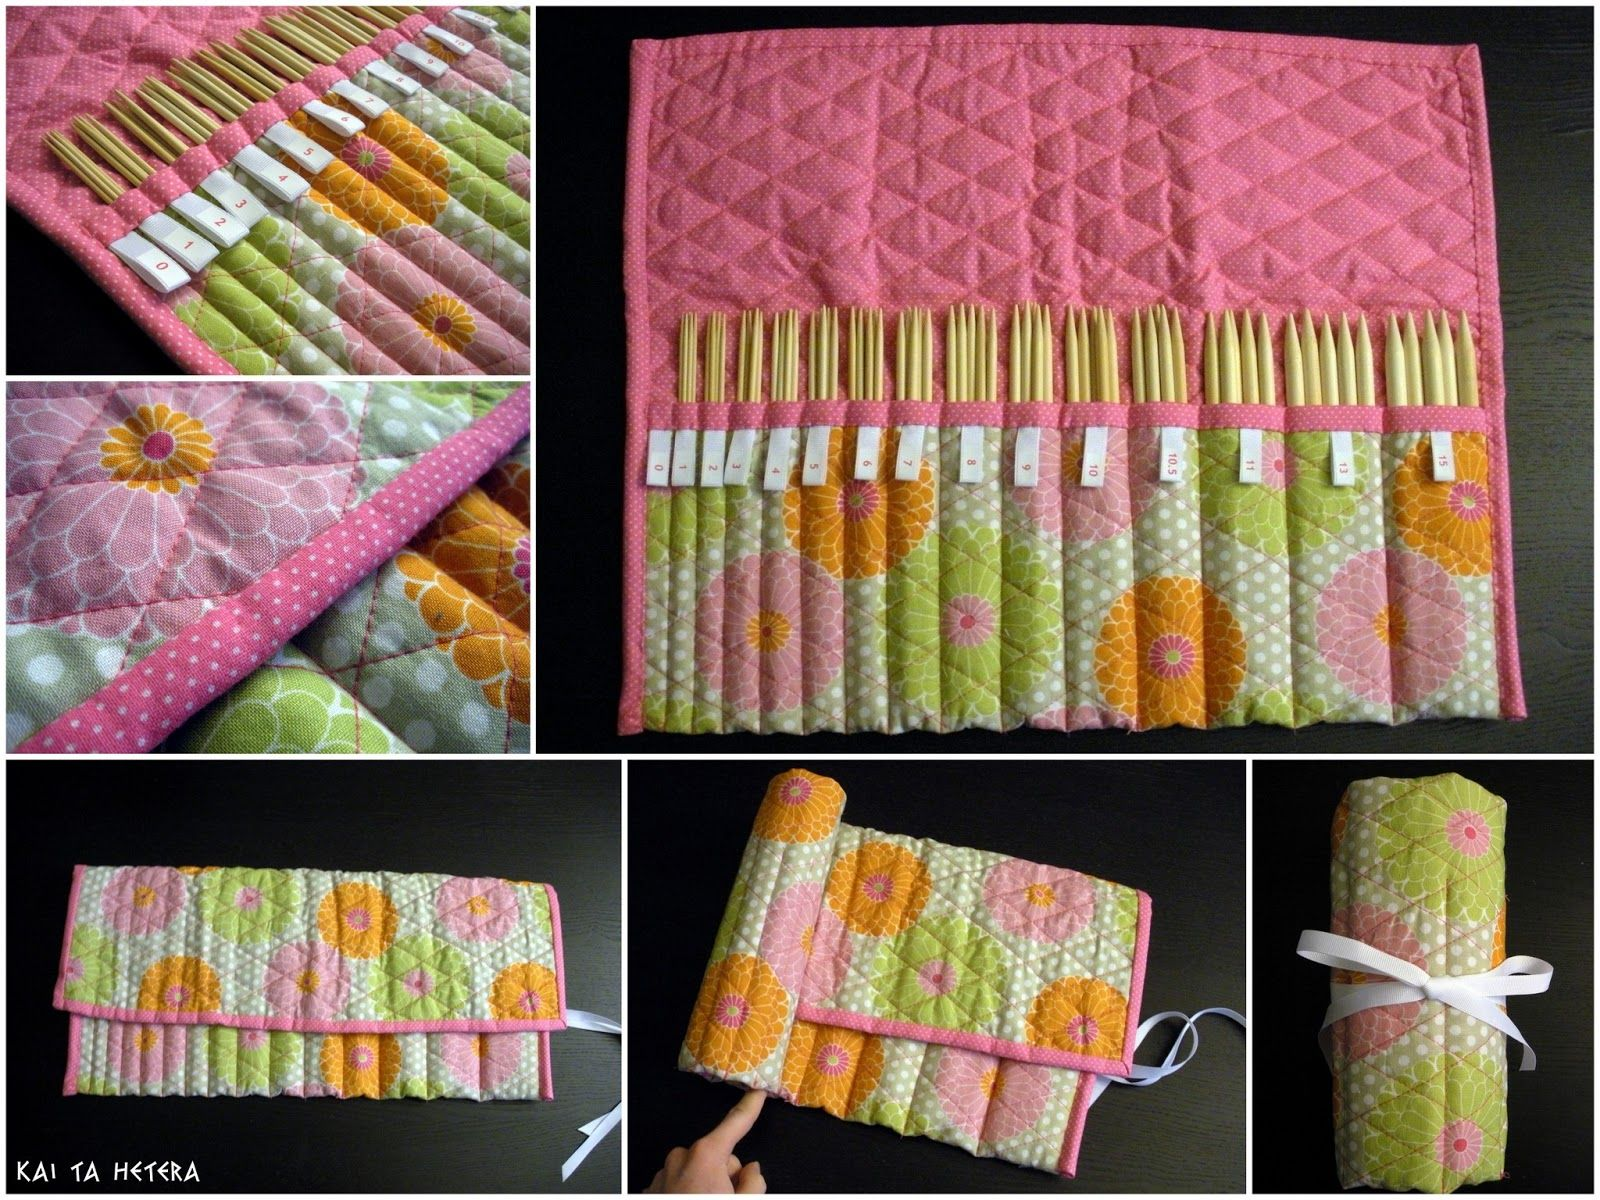 kai ta hetera: quilted knitting needle case | Sewing | Pinterest ...